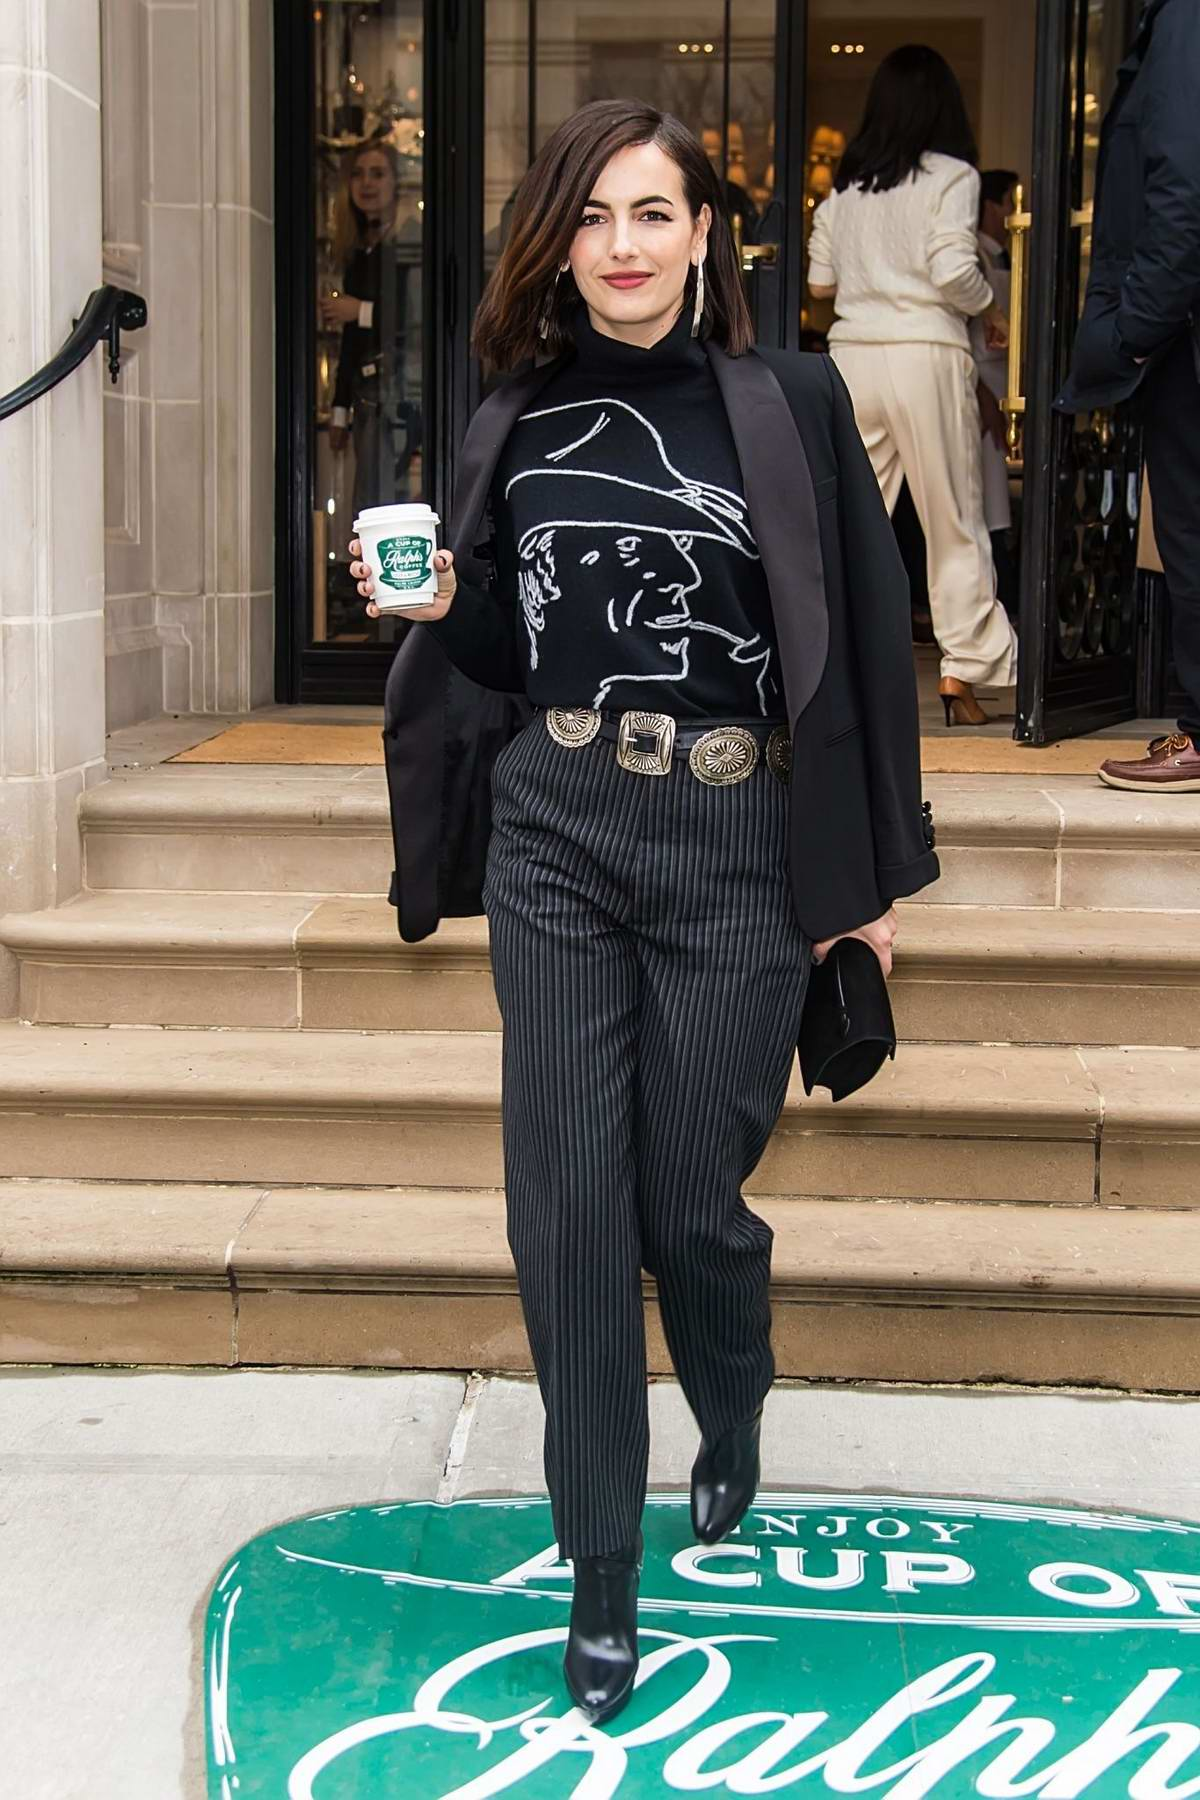 Camilla Belle leaving the Ralph Lauren Show during New York Fashion Week in New York City